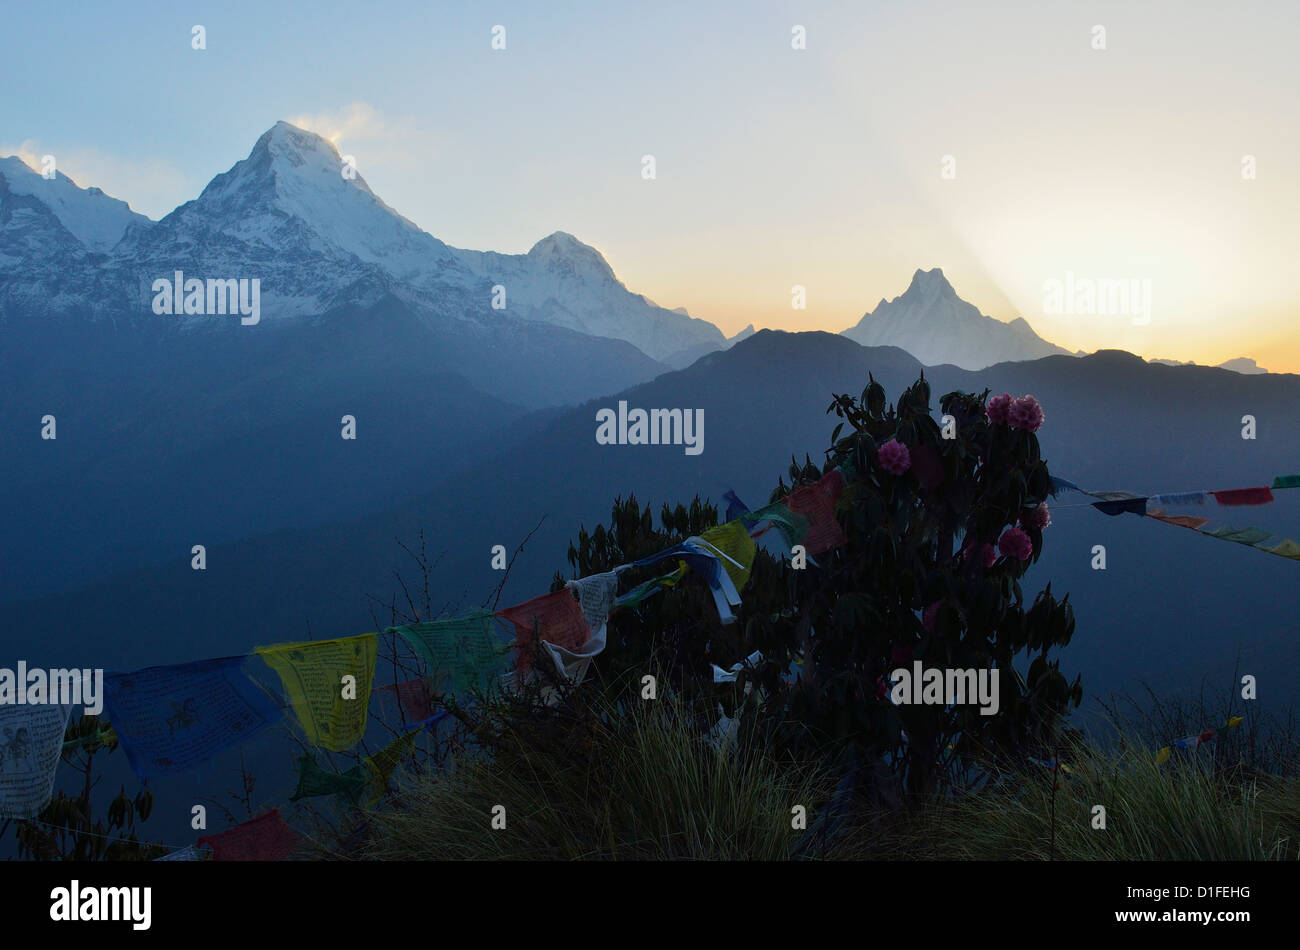 Annapurna Range seen from Poon Hill, Annapurna Conservation Area, Dhawalagiri, Western Region (Pashchimanchal), - Stock Image